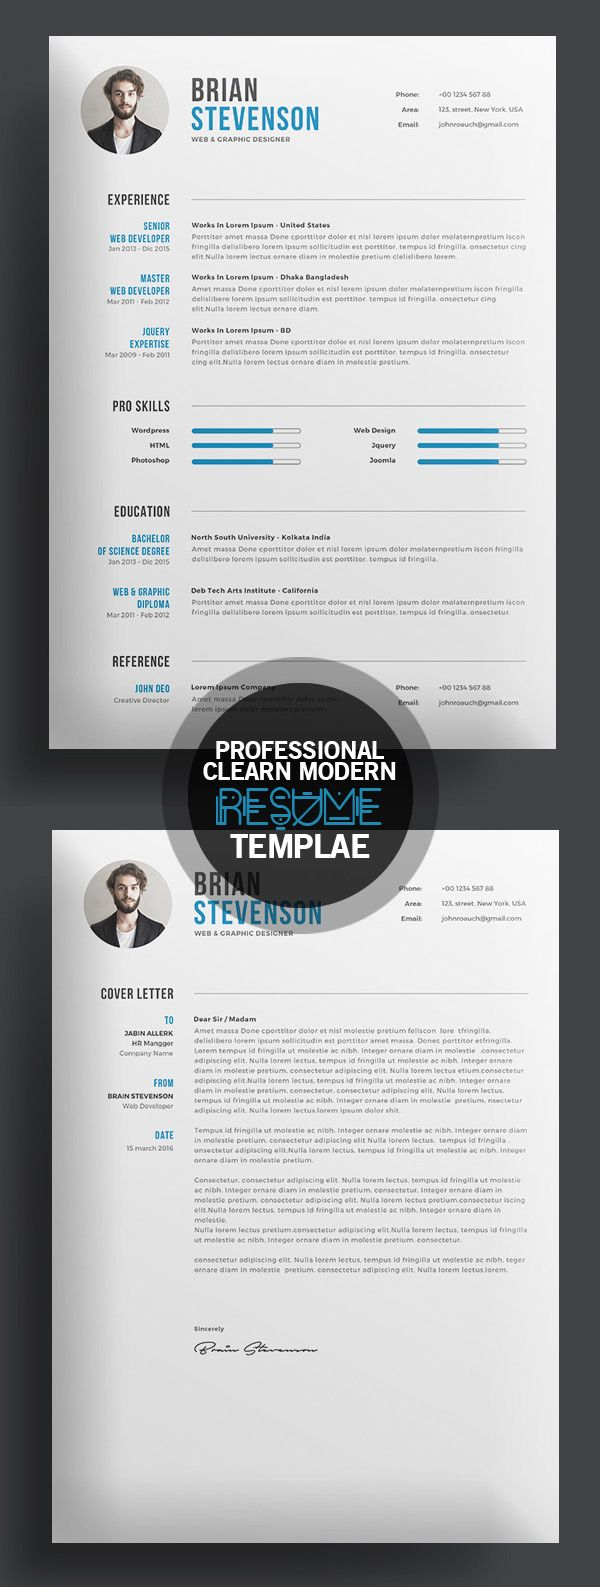 creative clearn professional resume template more. Resume Example. Resume CV Cover Letter